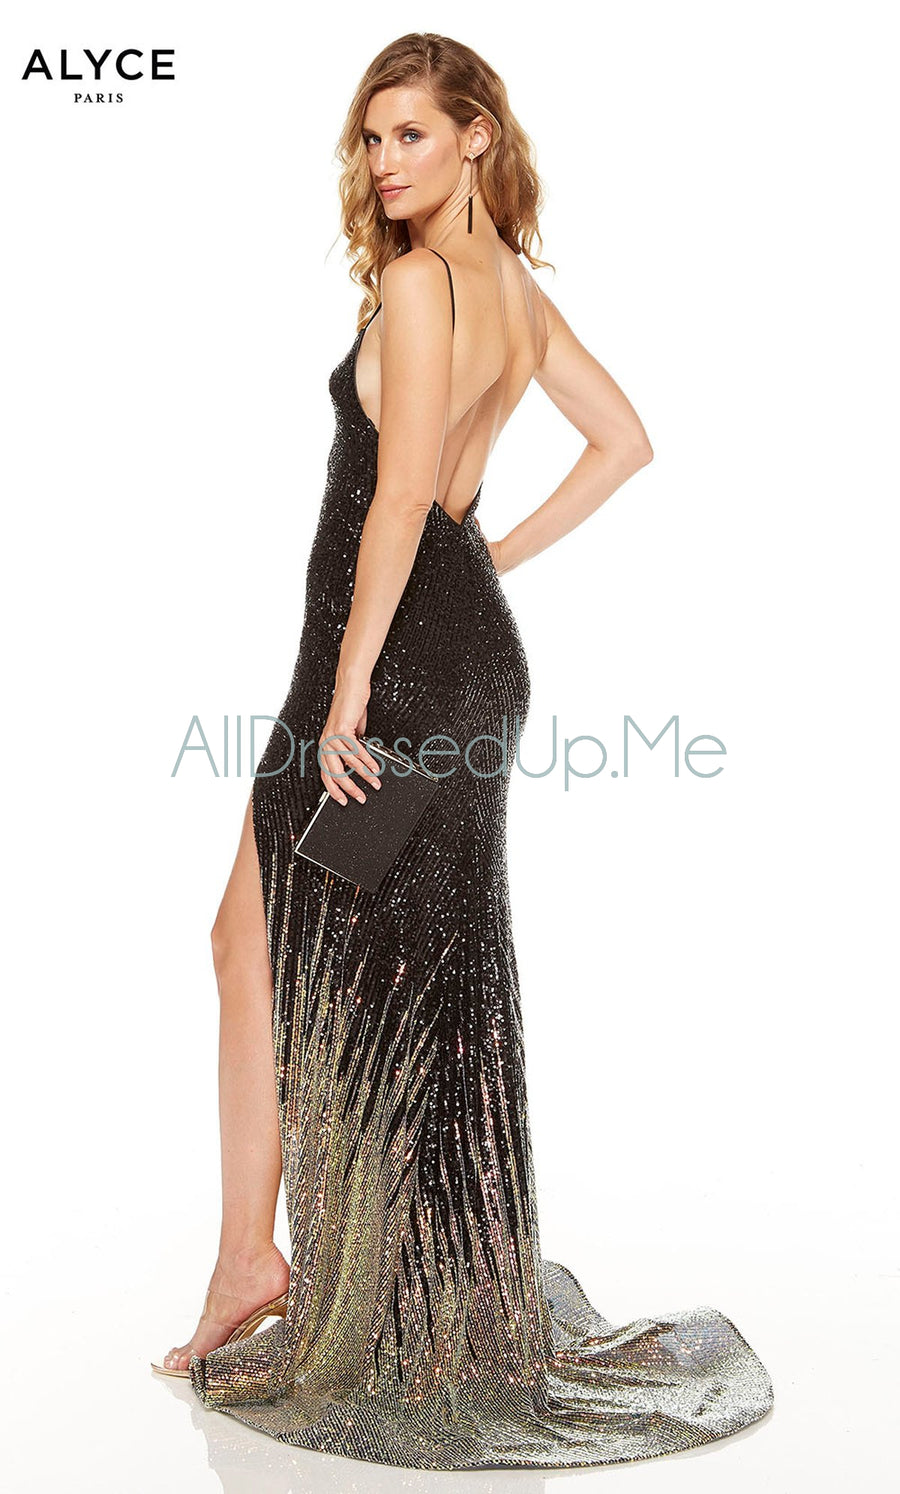 Alyce Paris - 60836 - All Dressed Up, Prom/Party Dress - - Dresses Two Piece Cut Out Sweetheart Halter Low Back High Neck Print Beaded Chiffon Jersey Fitted Sexy Satin Lace Jeweled Sparkle Shimmer Sleeveless Stunning Gorgeous Modest See Through Transparent Glitter Special Occasions Event Chattanooga Hixson Shops Boutiques Tennessee TN Georgia GA MSRP Lowest Prices Sale Discount